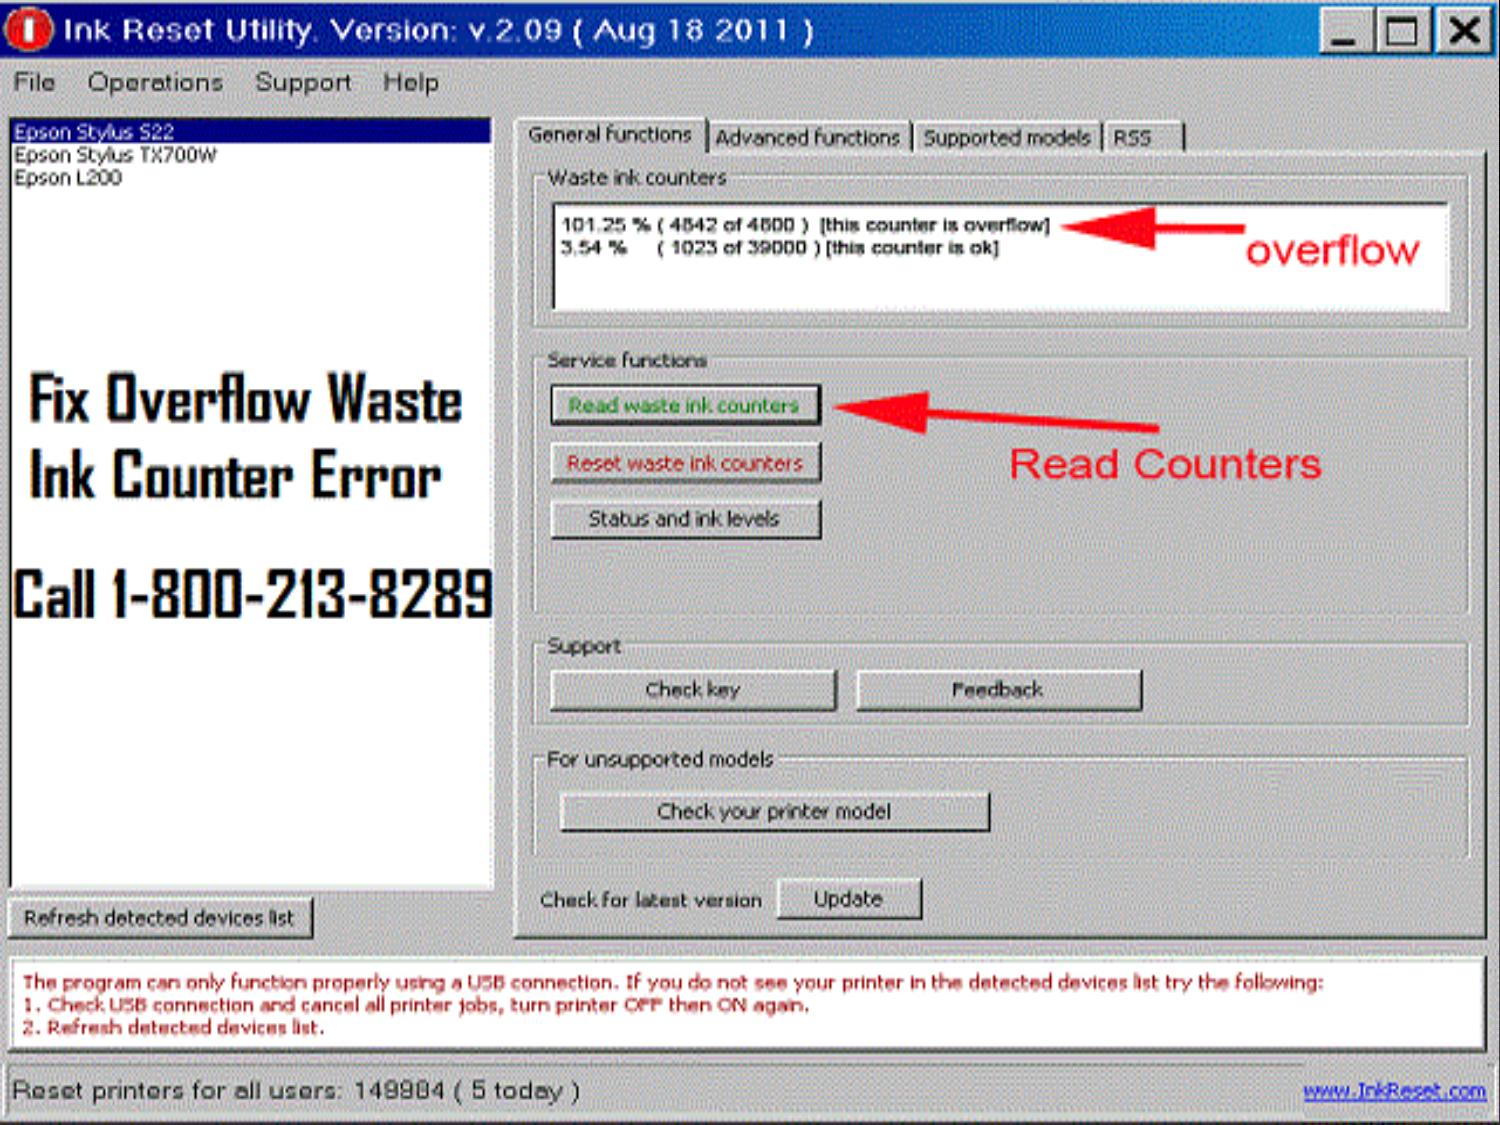 Fix overflow waste ink counter error by jacobmackwen - issuu